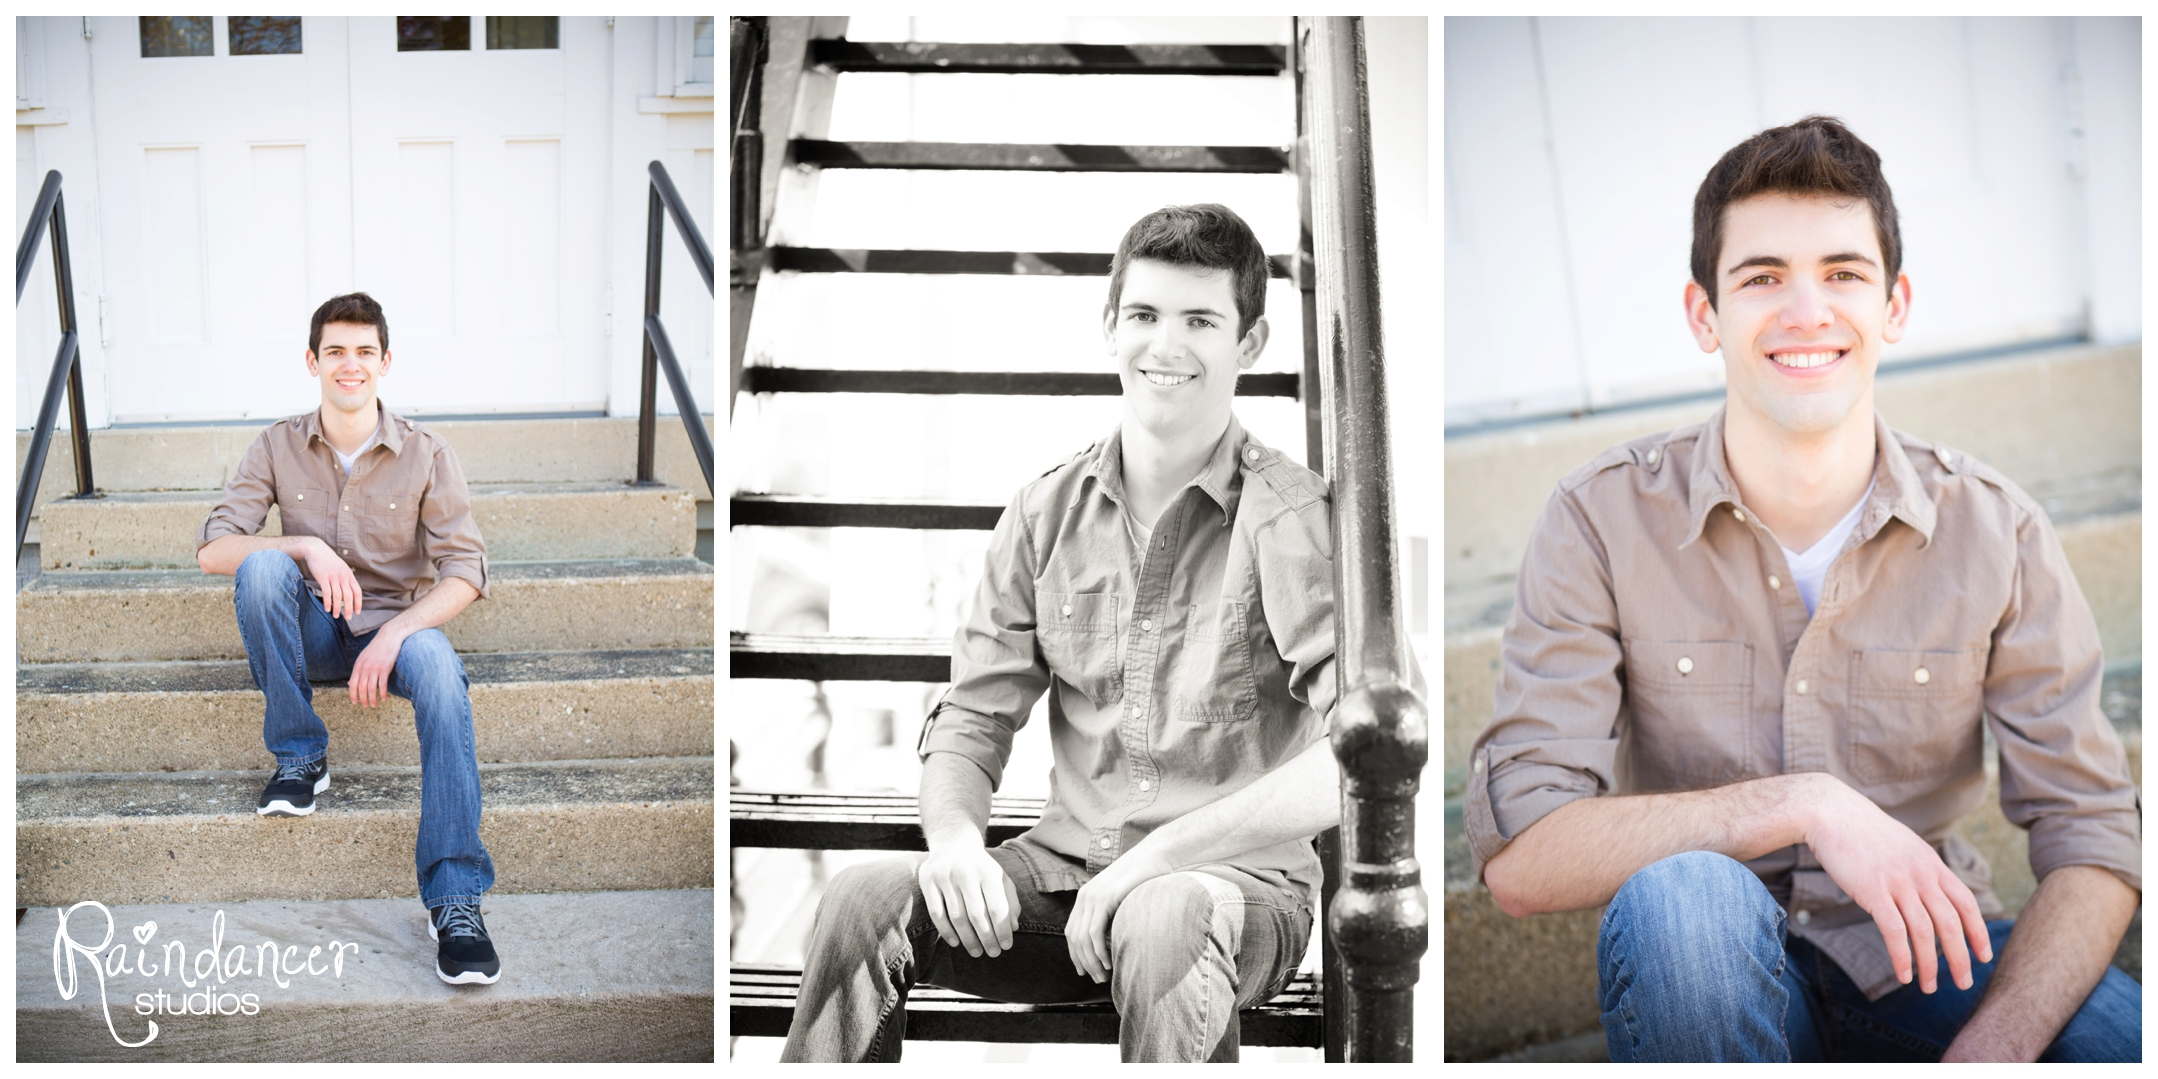 Indianapolis High School Senior Photographer, Indianapolis Senior Photography